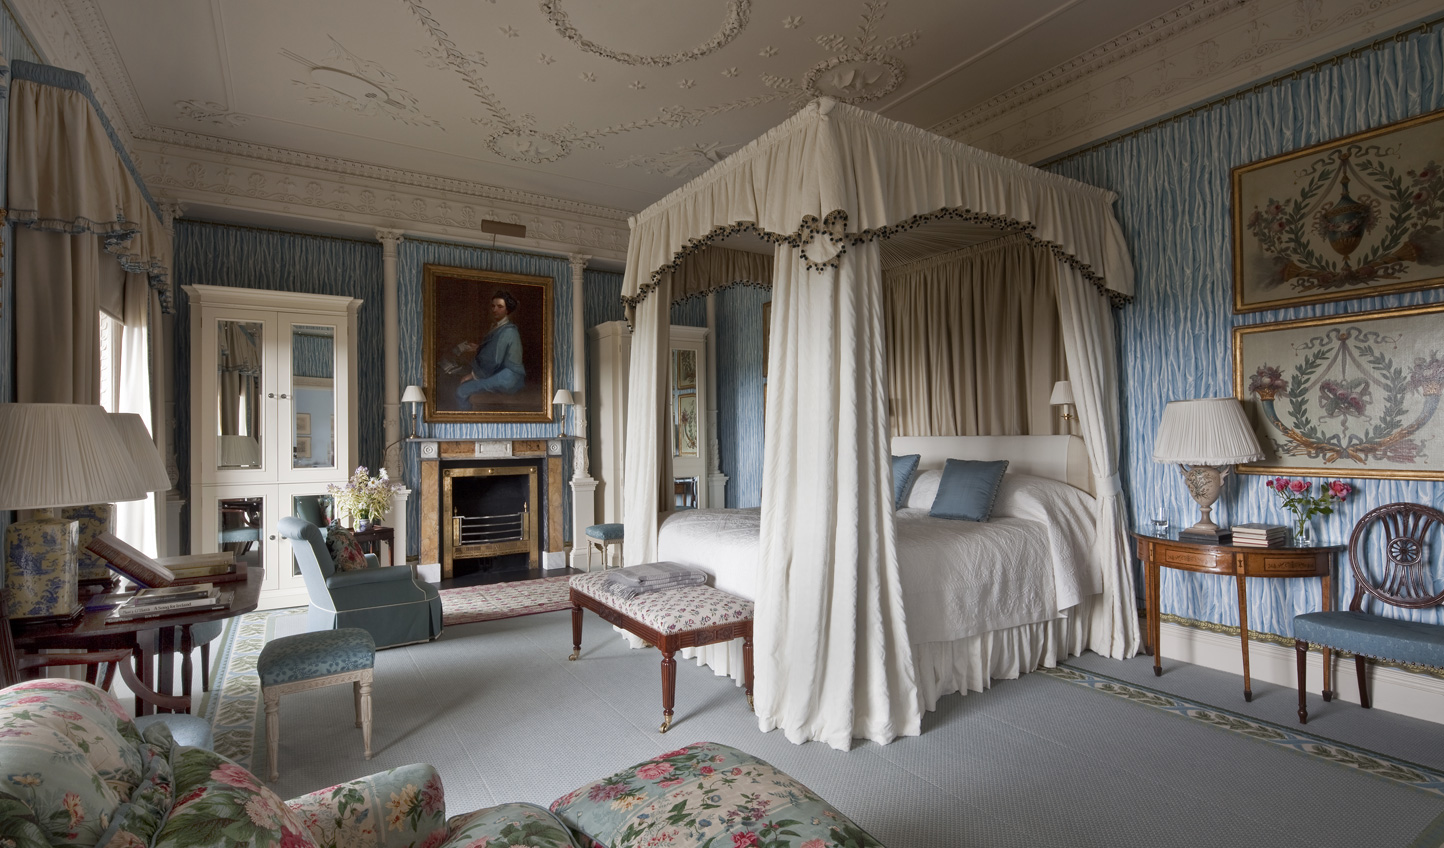 Sleep like royalty in a grand four poster bed